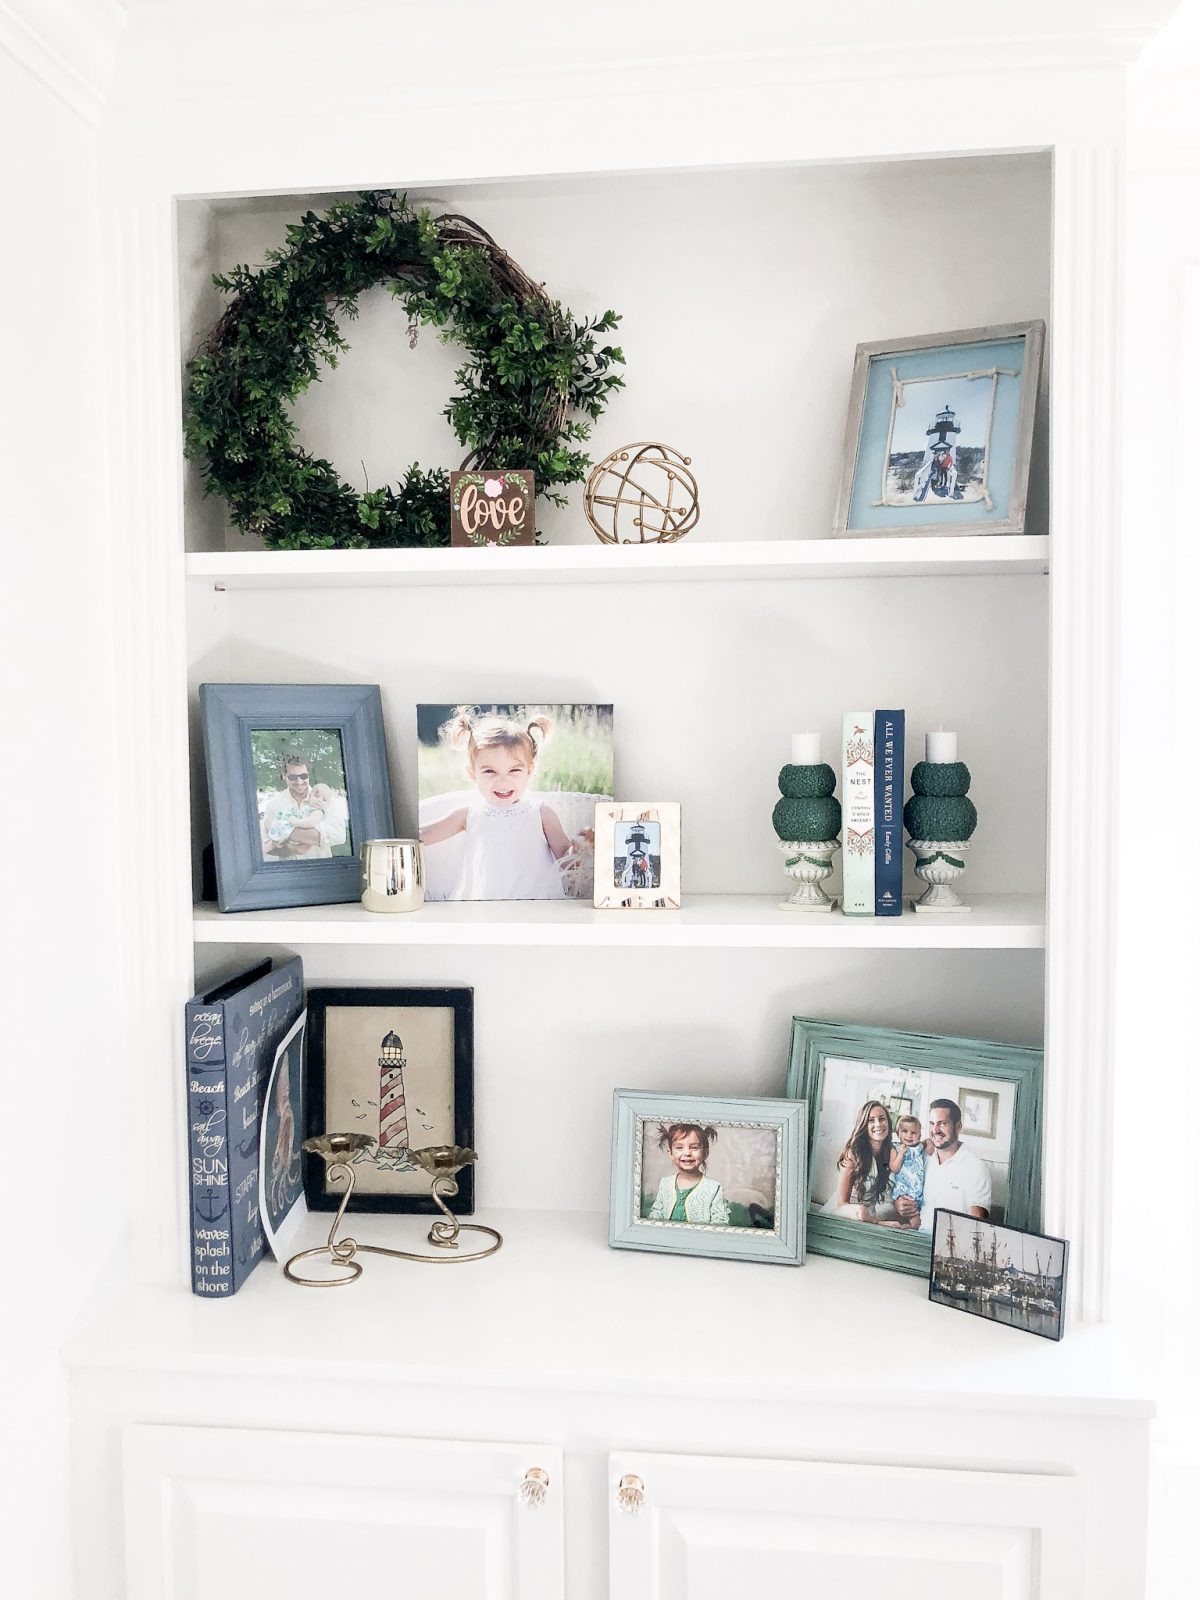 Built In Shelf Styling with Greens and Blues